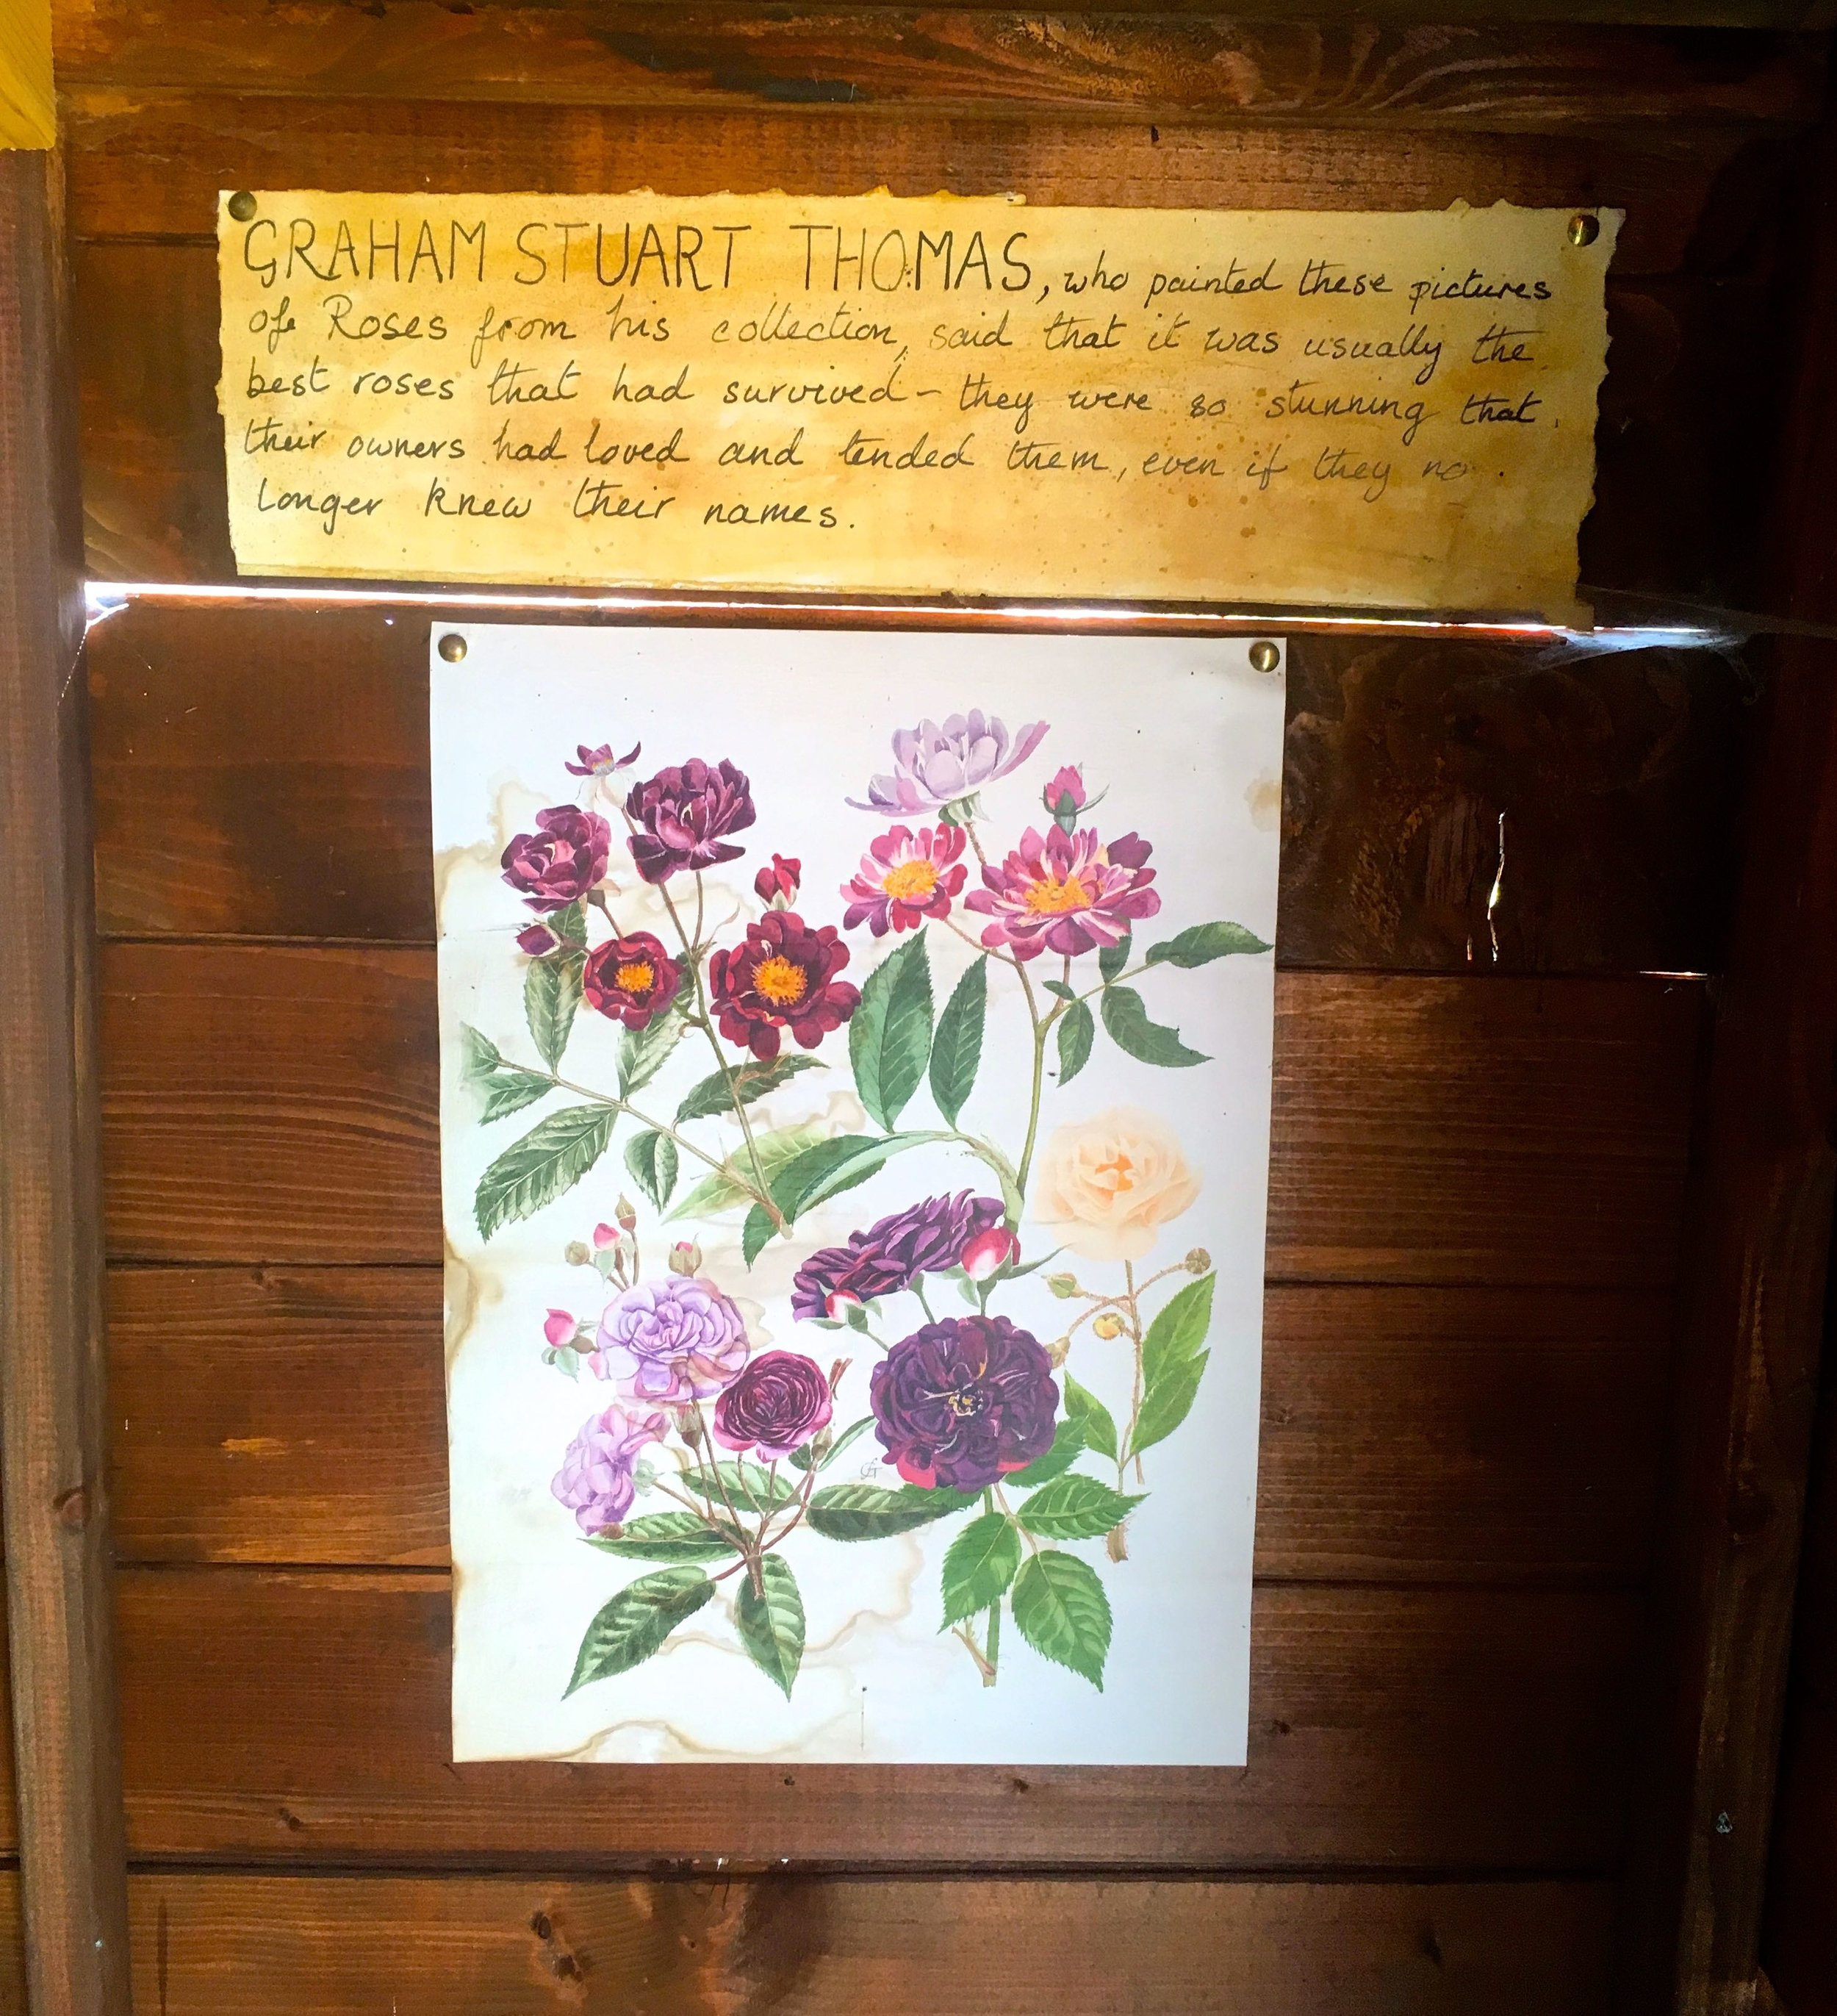 Hand-painted pictures of roses decorate the walls of the potting shed at Mottisfont